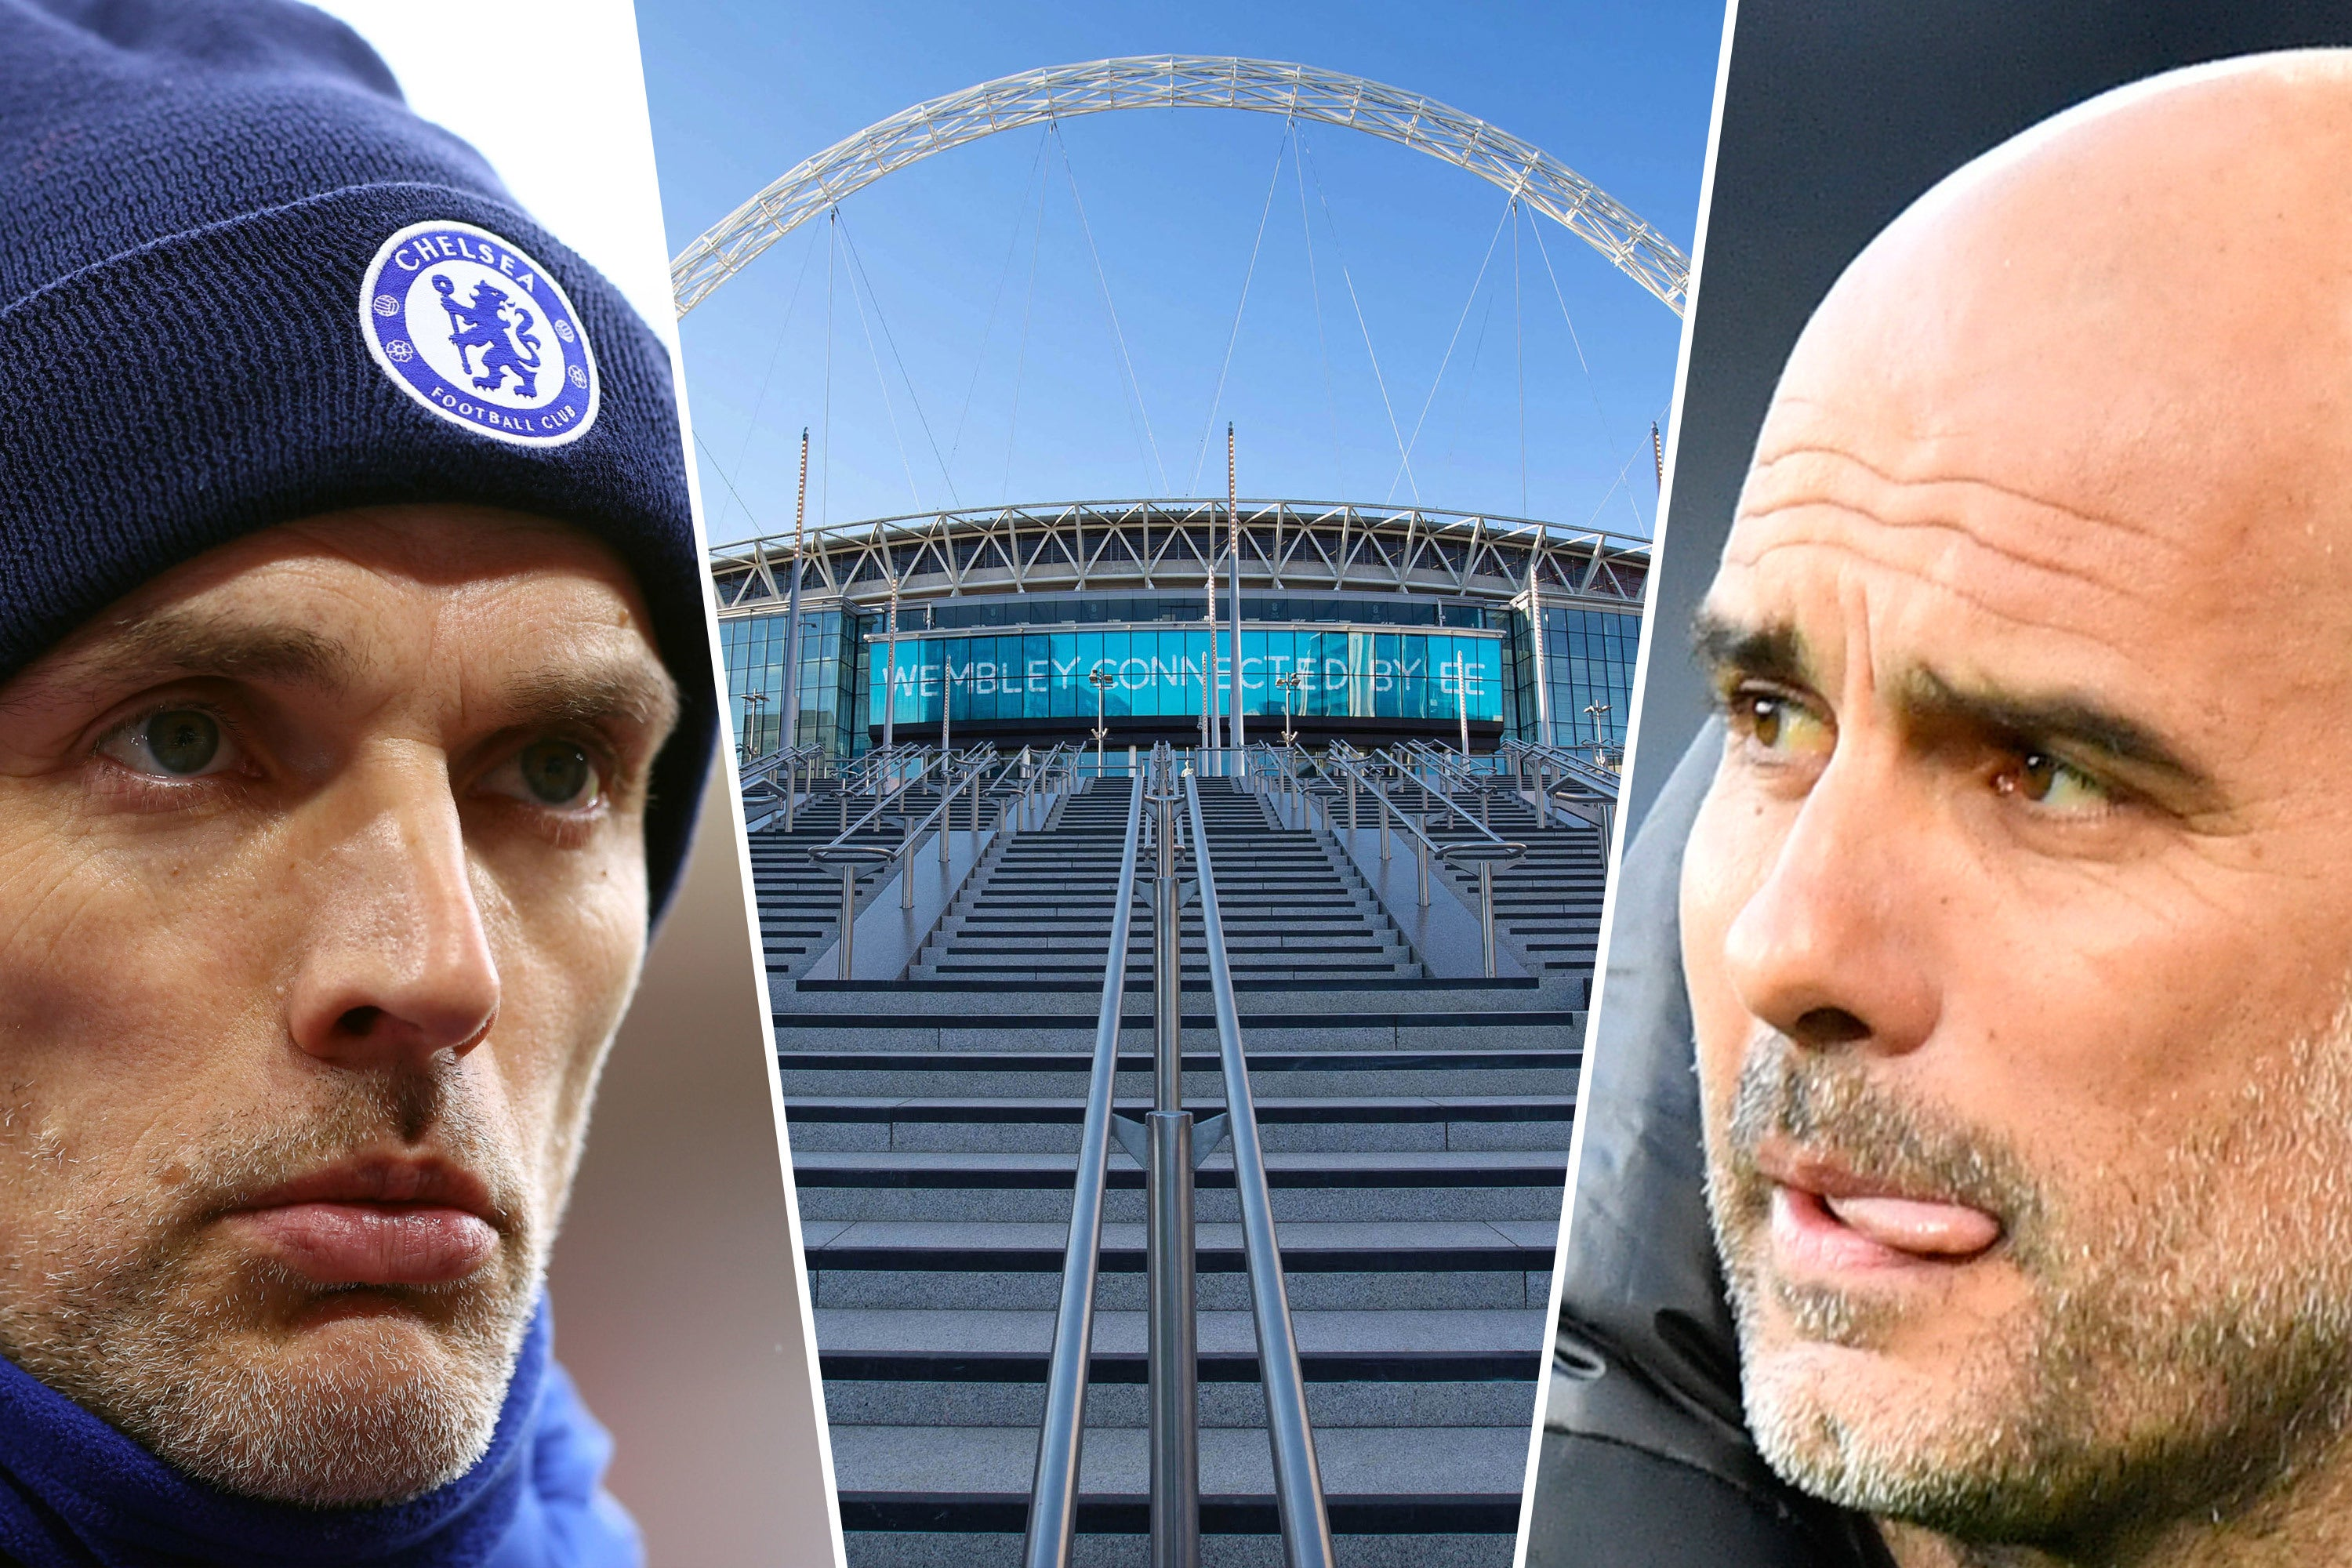 Chelsea FC vs Man City: Tuchel wants to close gap after learning lessons  from Guardiola | Evening Standard